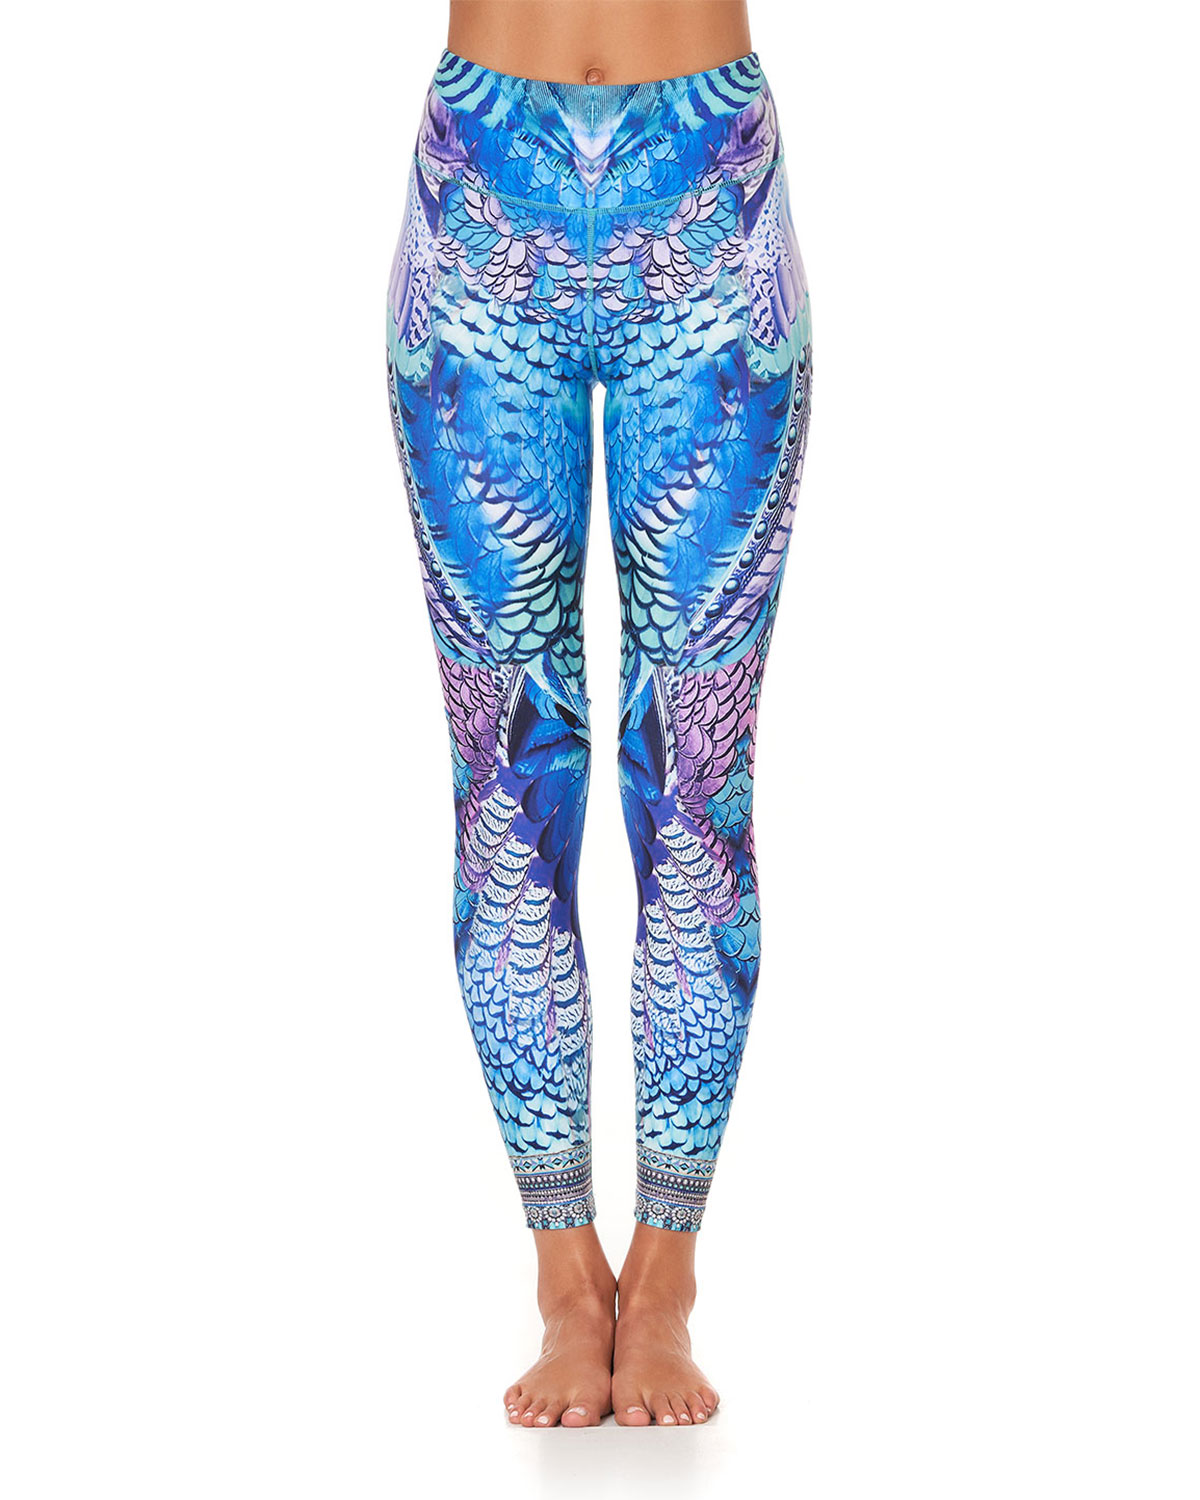 Camilla Jeans HIGH-RISE PRINTED ACTIVE LEGGINGS